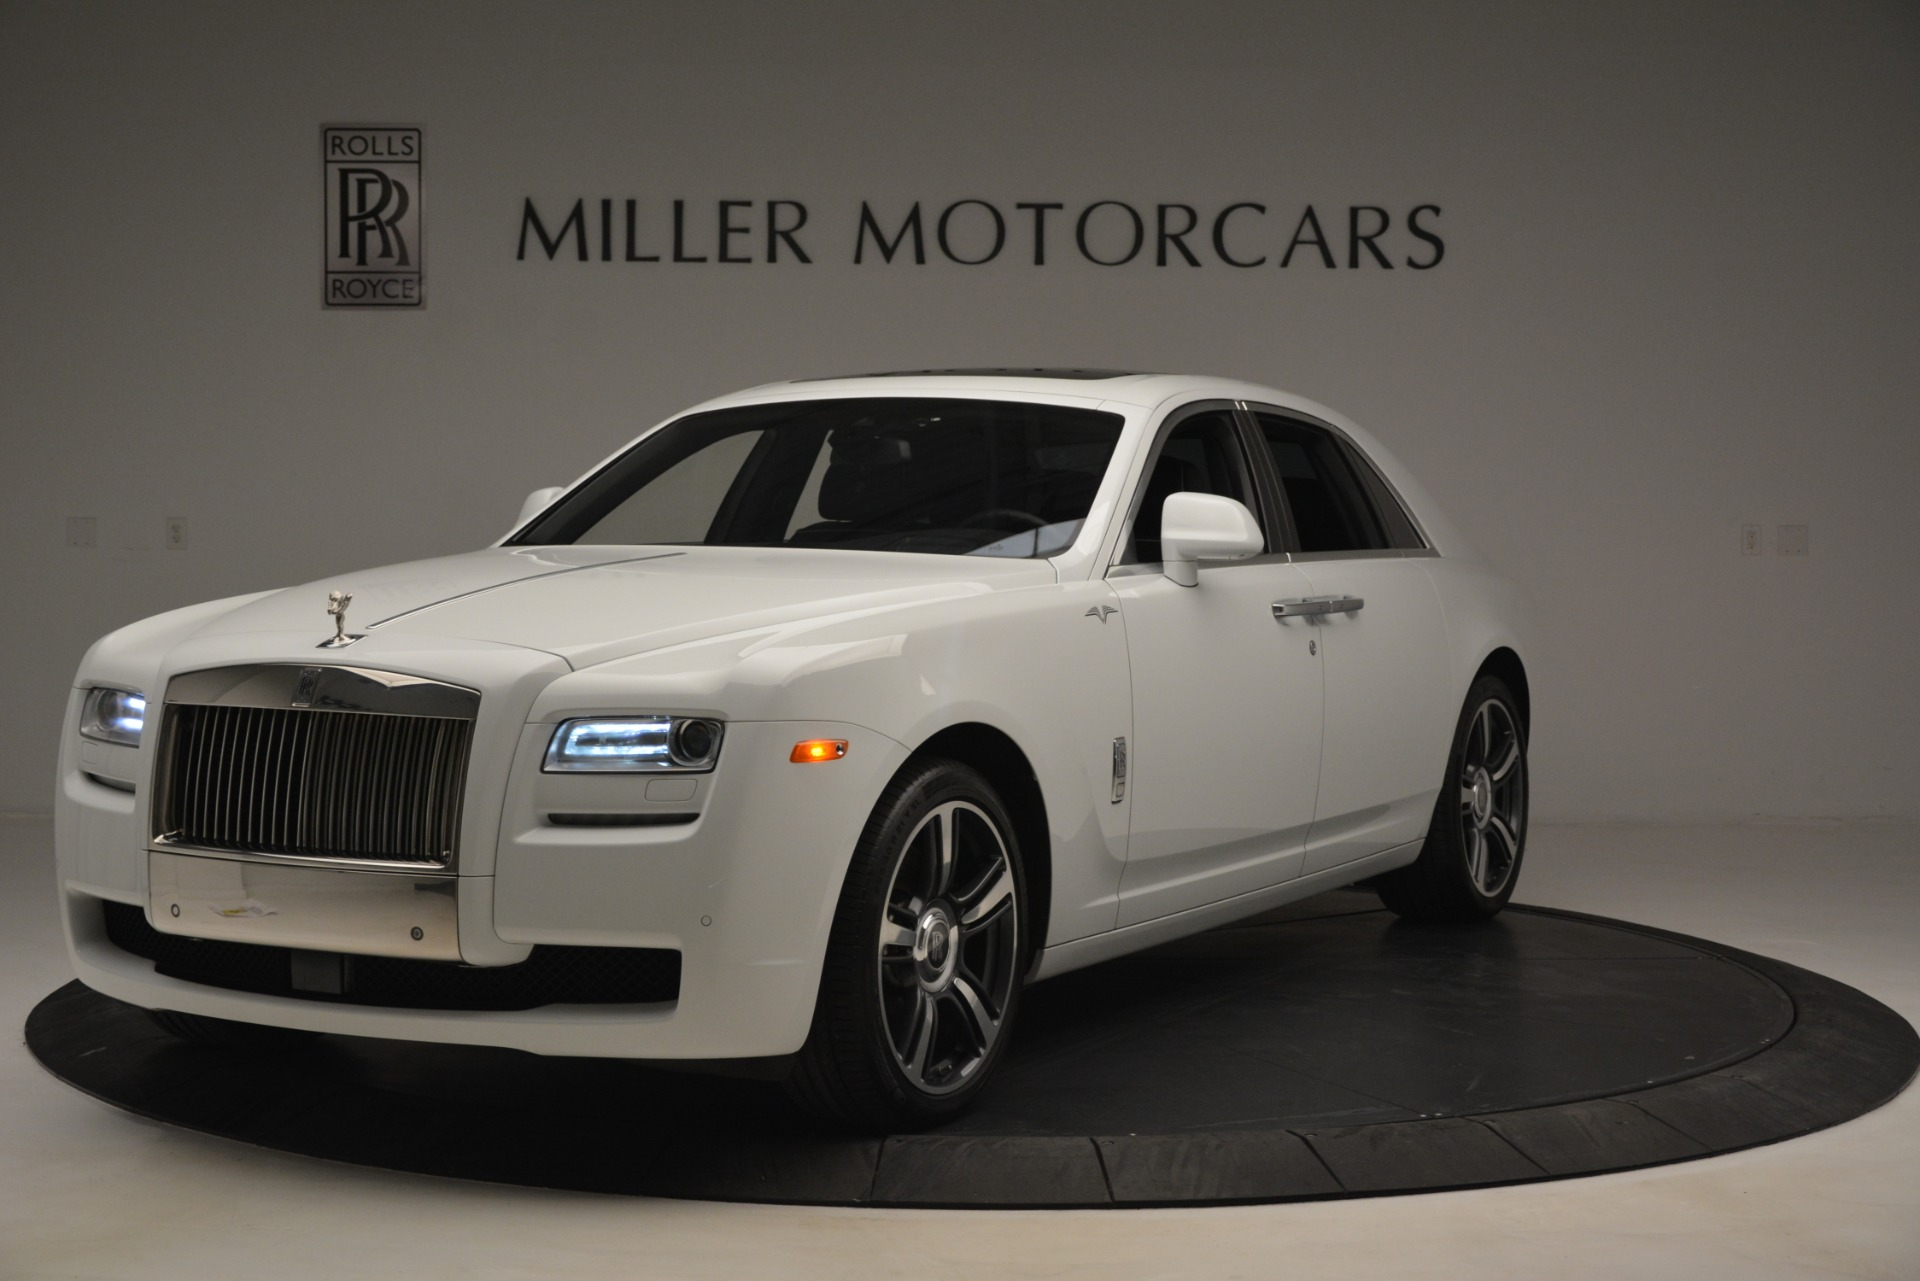 Used 2014 Rolls-Royce Ghost V-Spec for sale Sold at Aston Martin of Greenwich in Greenwich CT 06830 1